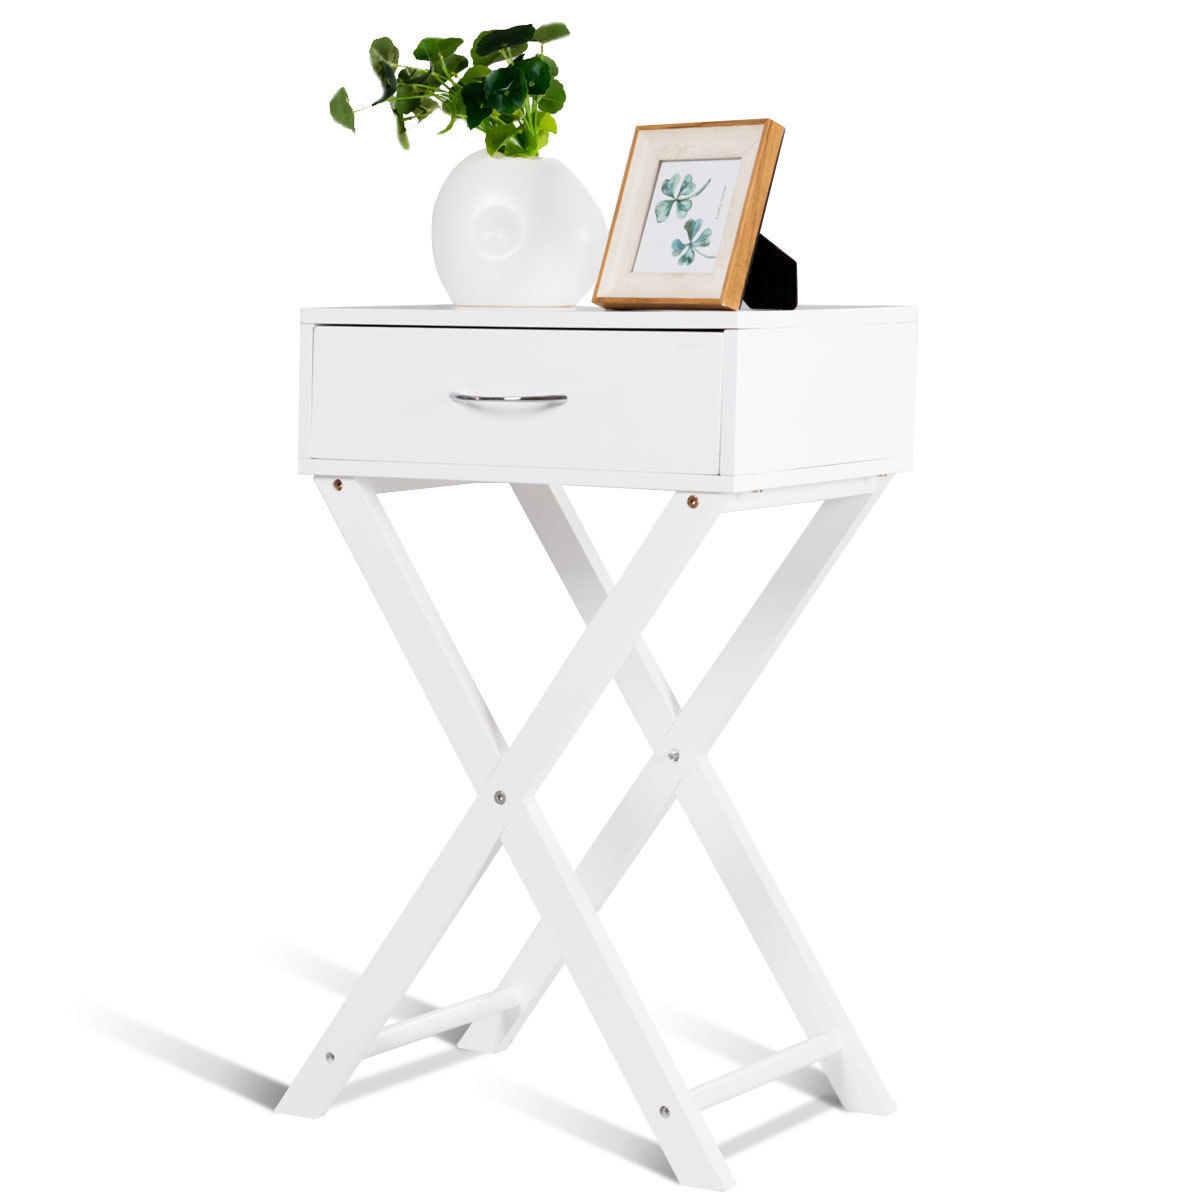 Costway nightstand x shape drawer accent side end table modern home furniture white 0